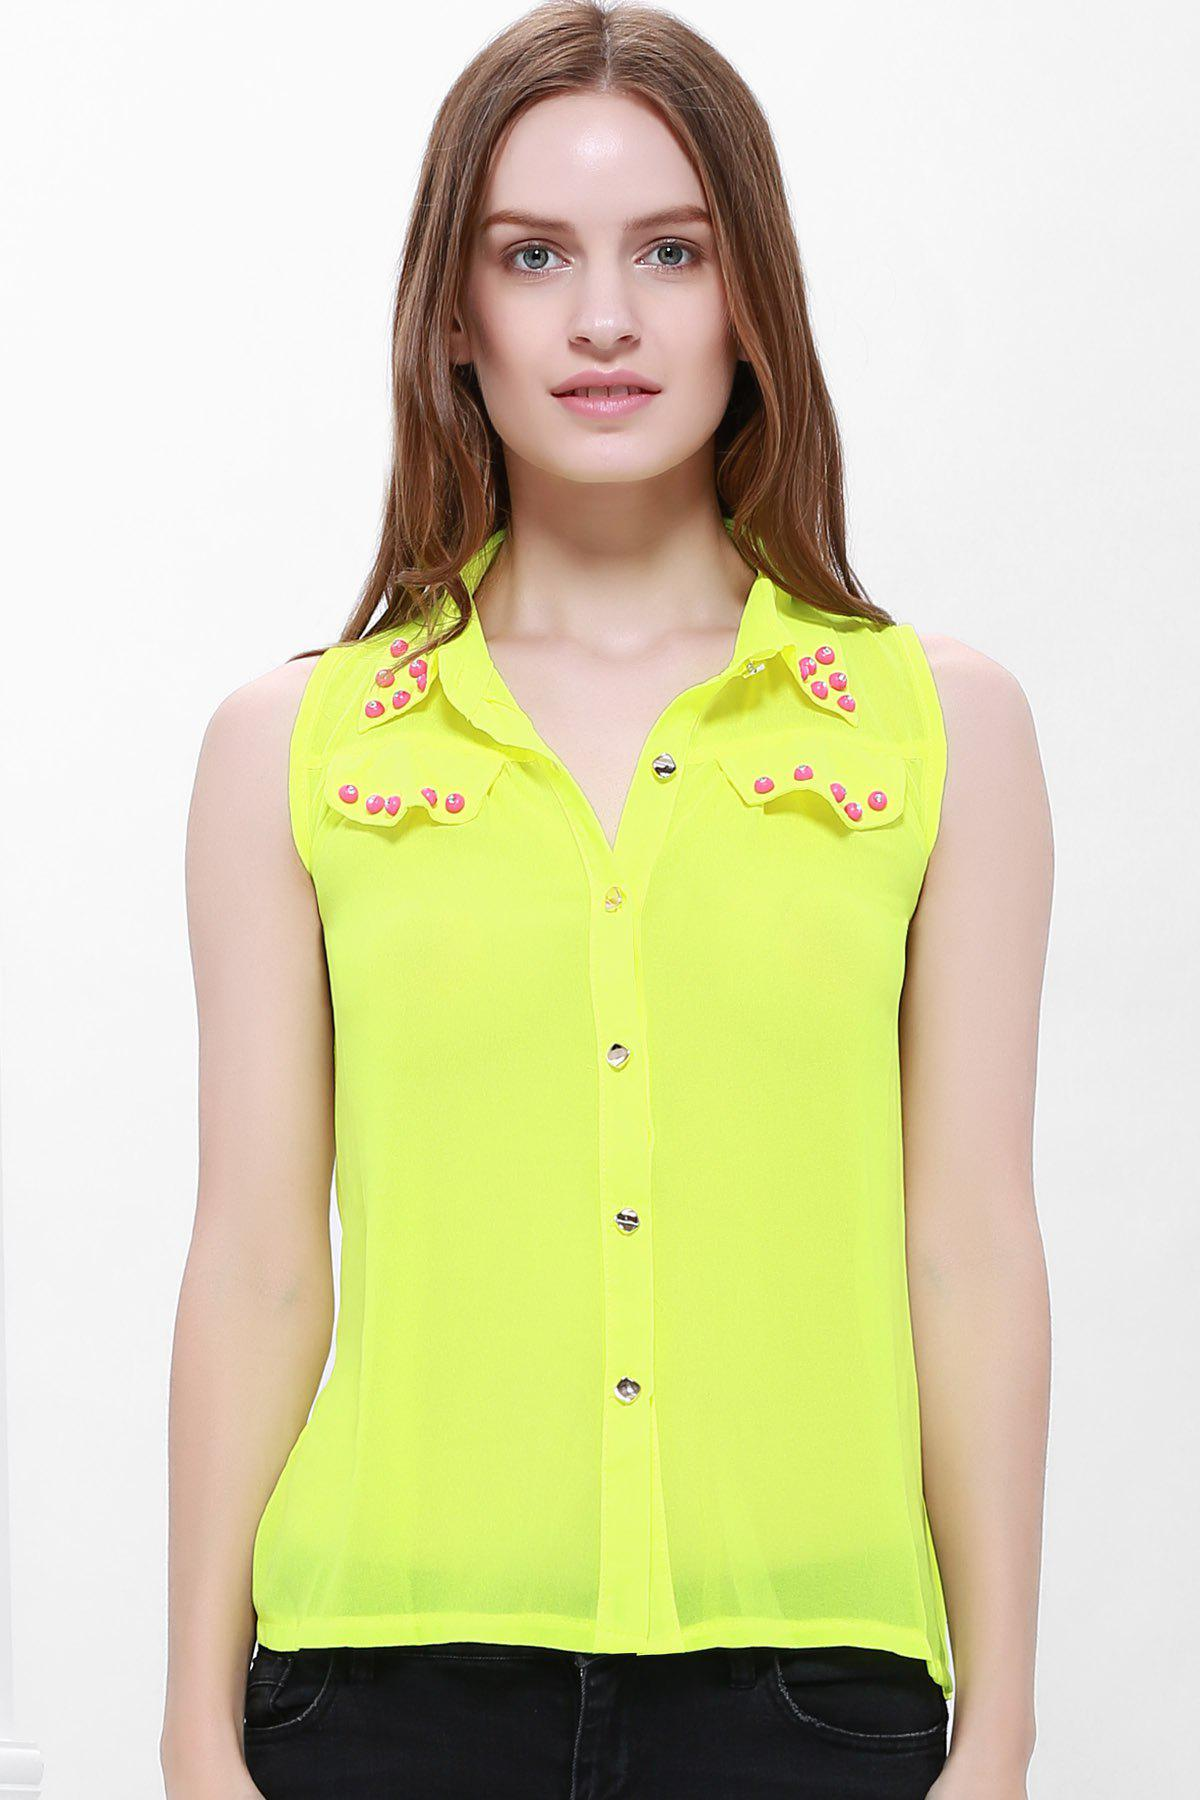 Stylish Stud Embellished Color Match Women's Chiffon Blouse - FLUORESCENT YELLOW S